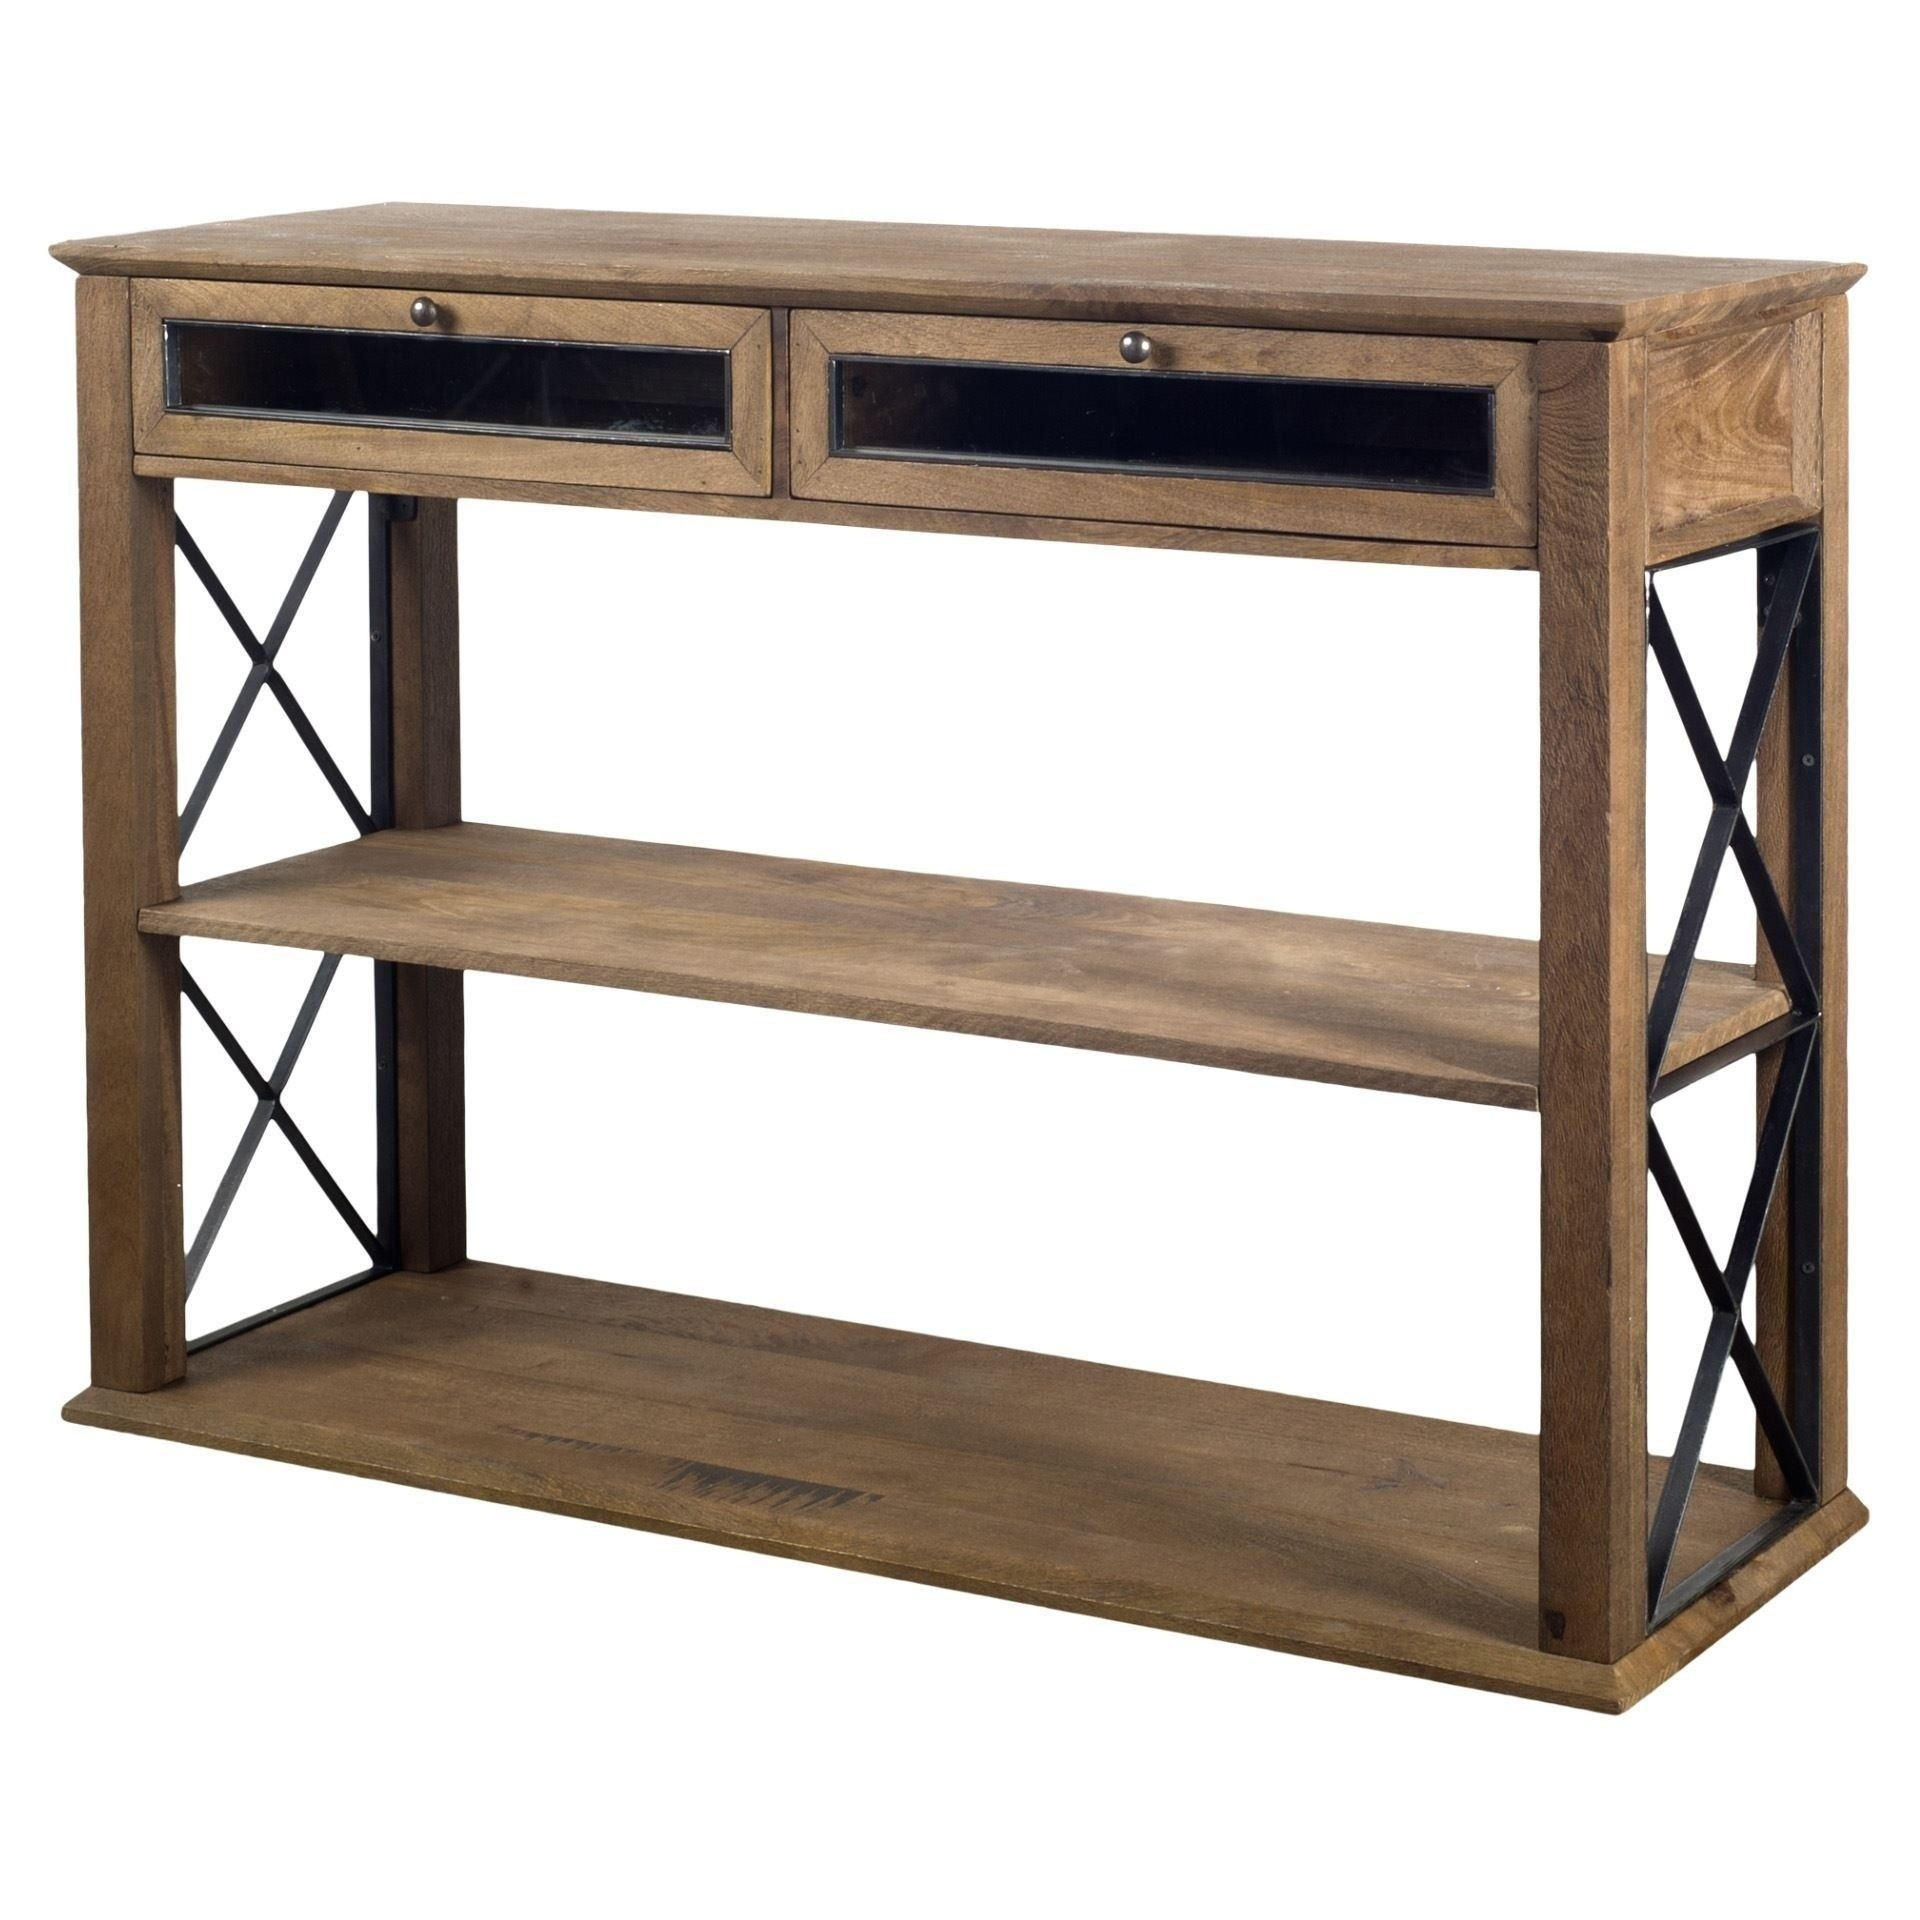 Today, it's a company with hundreds of employees and multiple stores across florida. Mercana Eldorado V Console Table, Brown | Rustic furniture